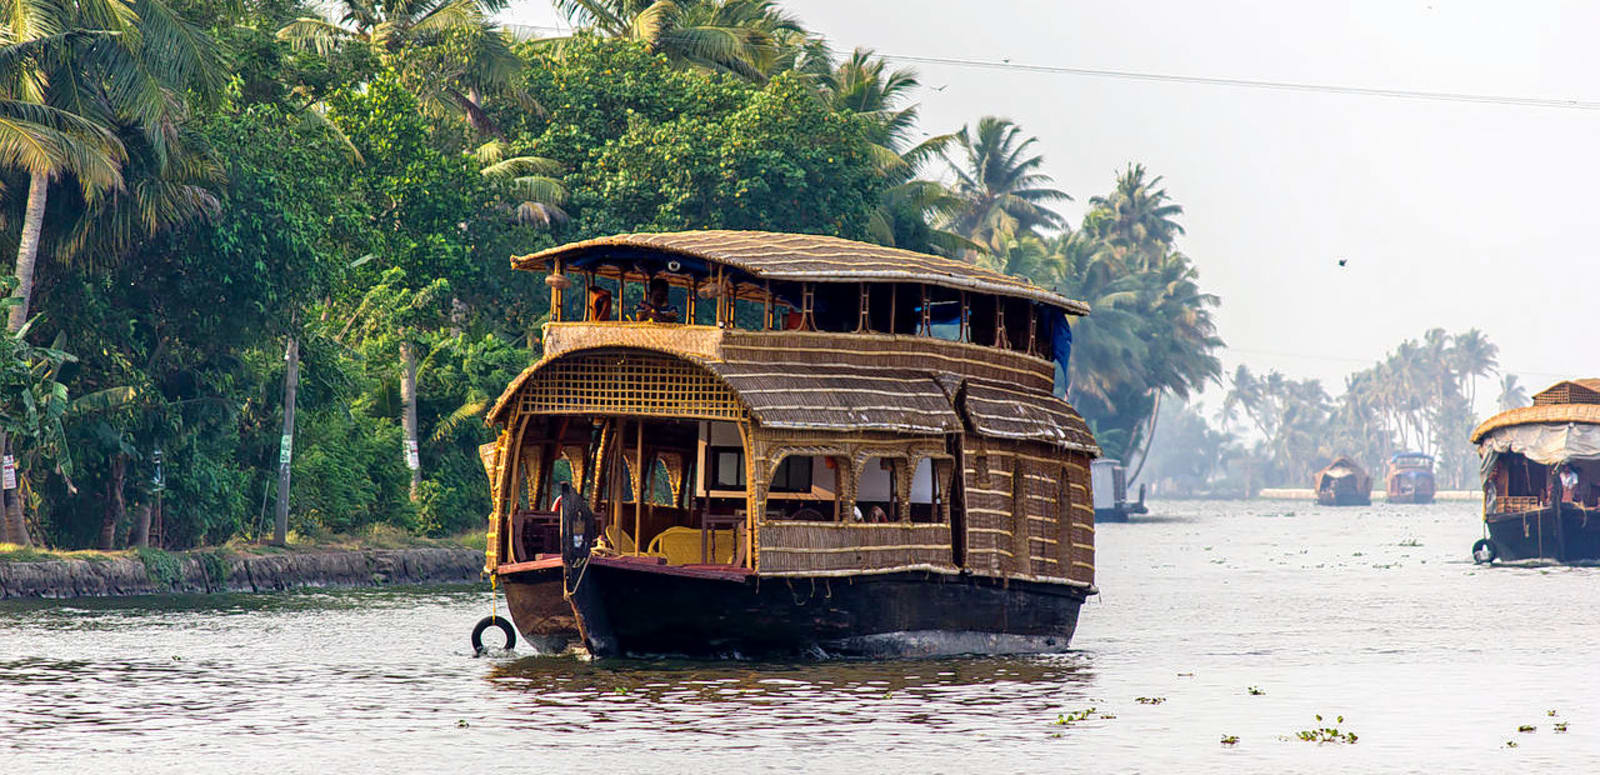 1493301611_1280px-houseboat_in_alleppey_(7057374293).jpg